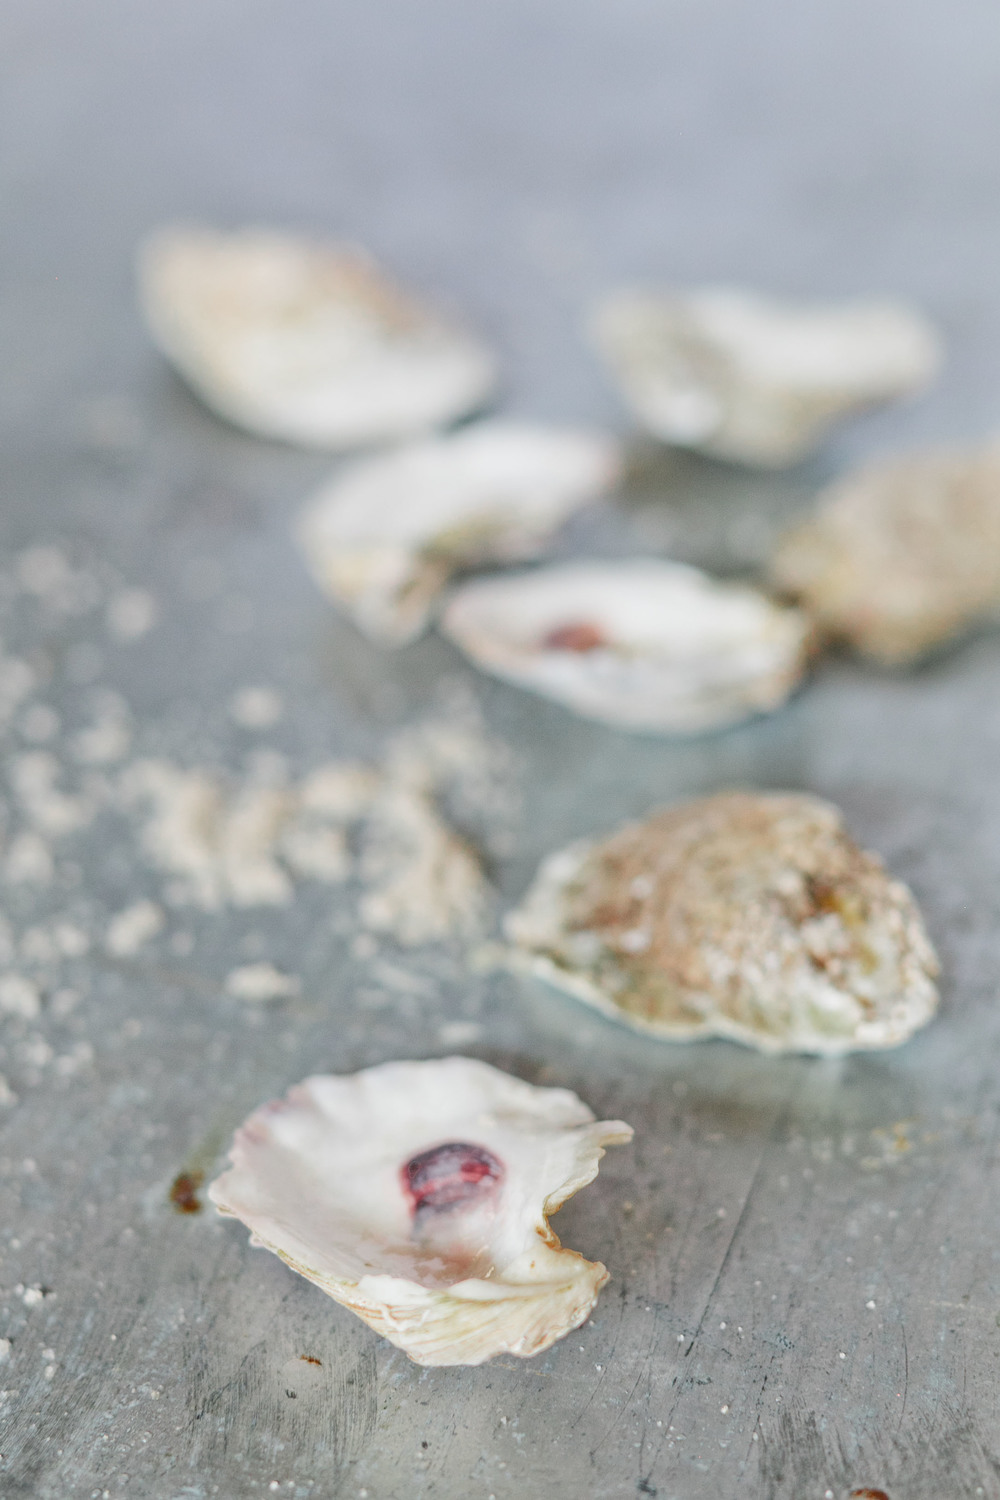 Atlanta-Product-Photographer-DIY-Kathryn-McCrary-Photography-Gold-Oyster-Shells-Craft3.jpg